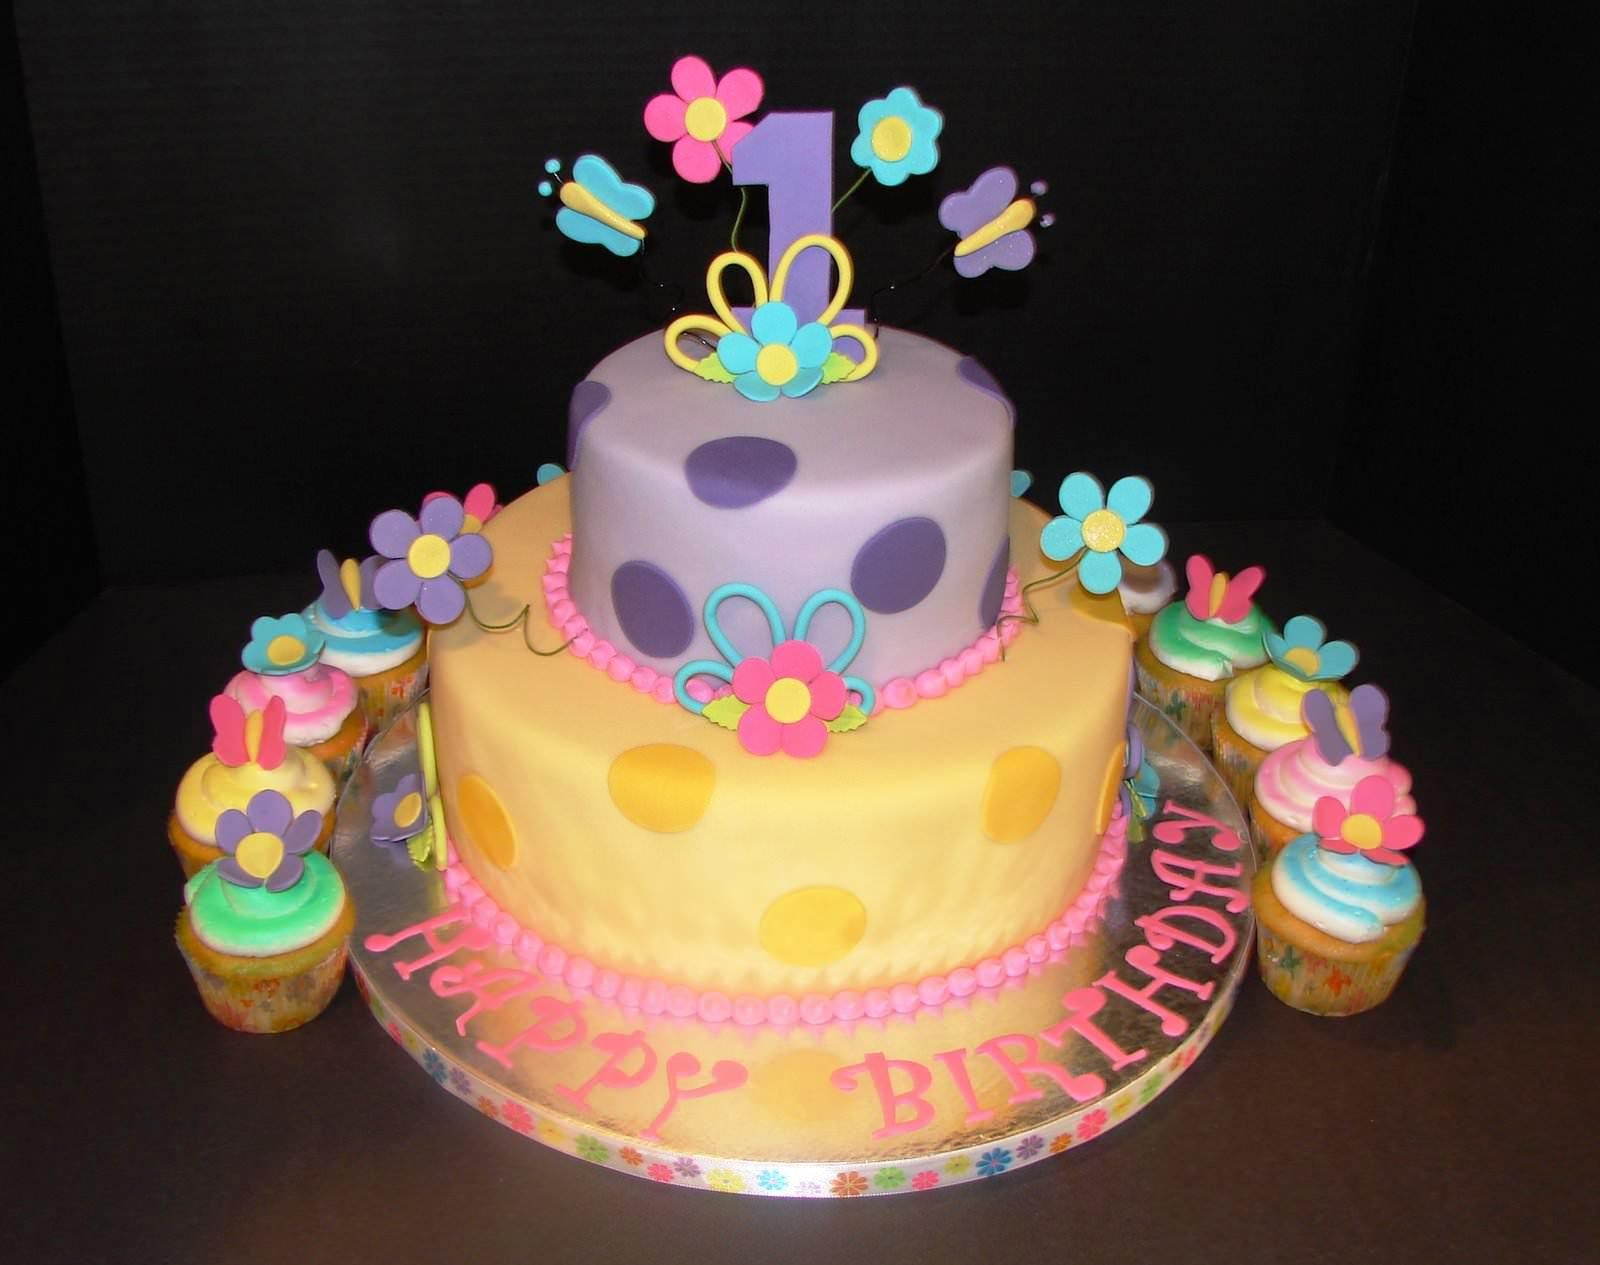 Safeway Cakes Bakery Birthday Cake Designs